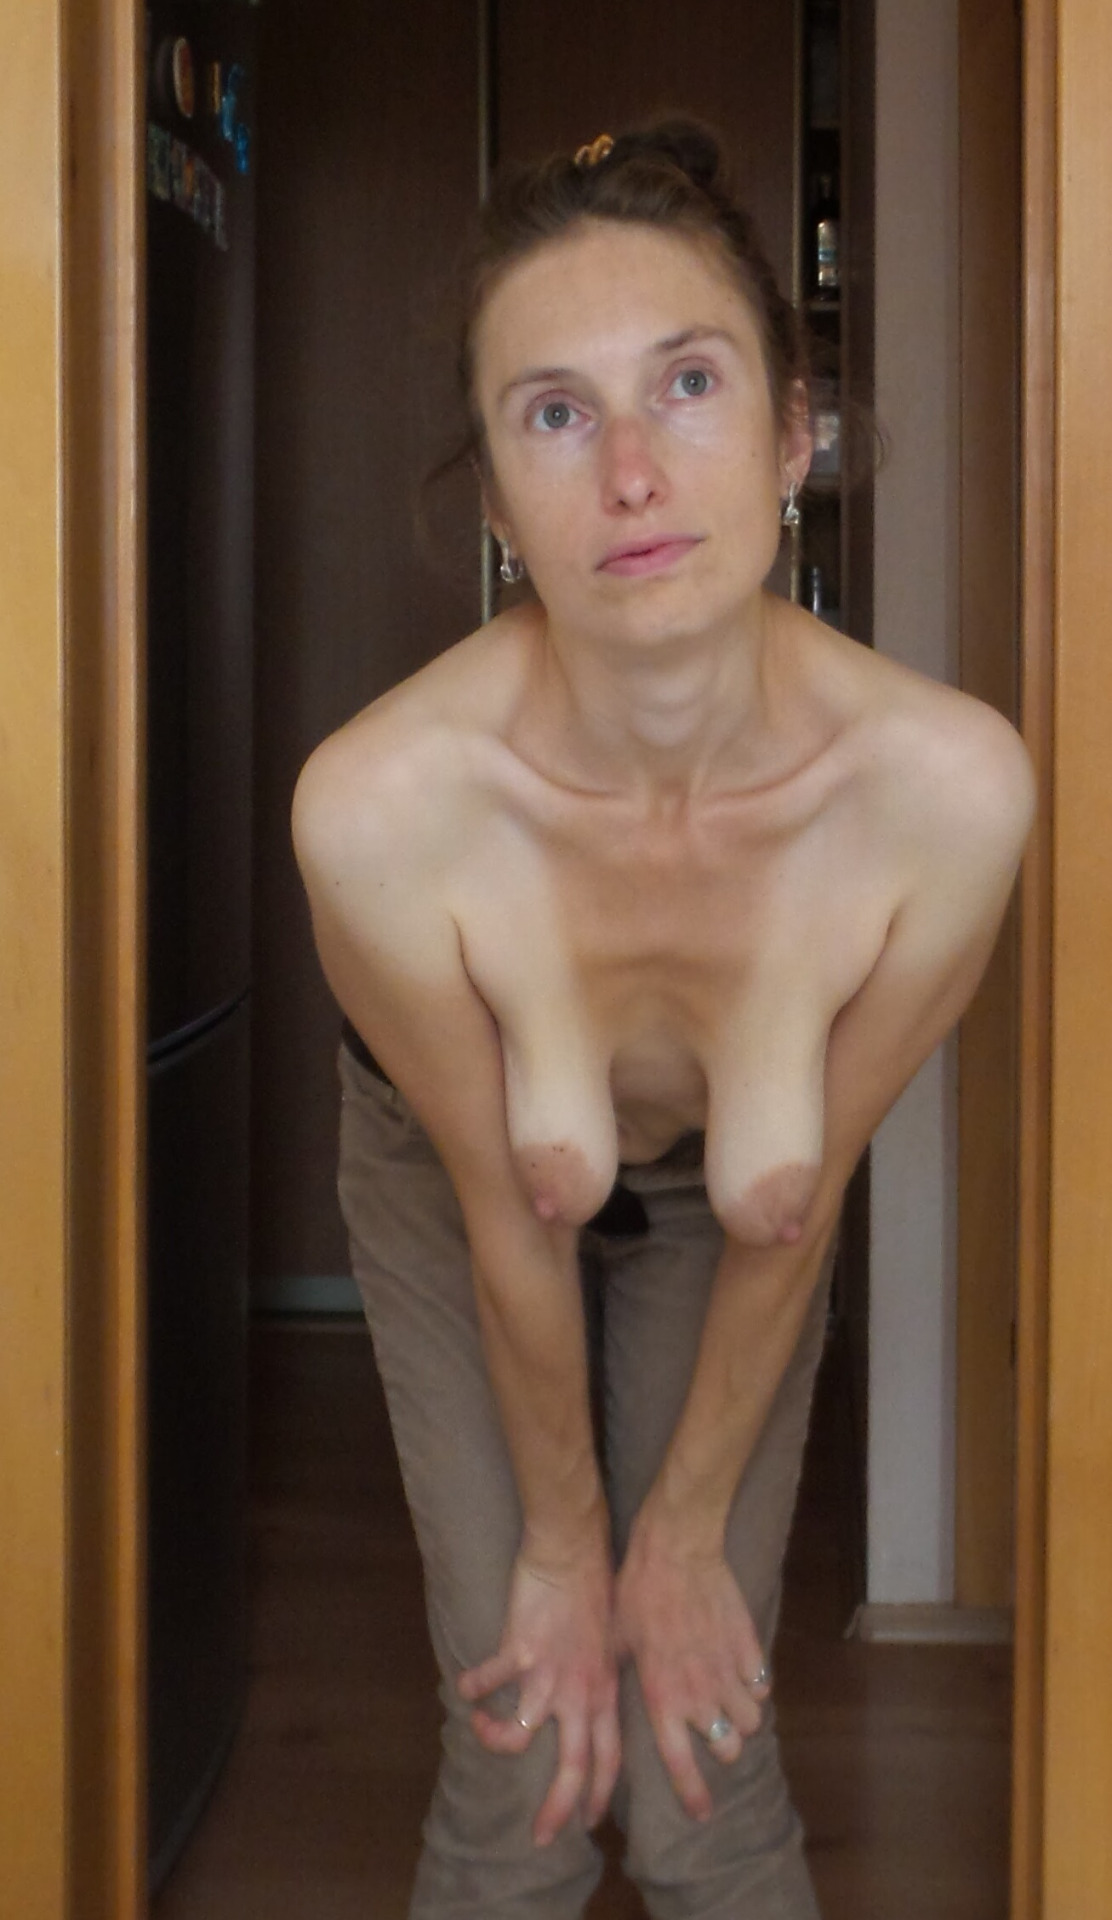 search gives blowjob old lady porn mature ladies sexy